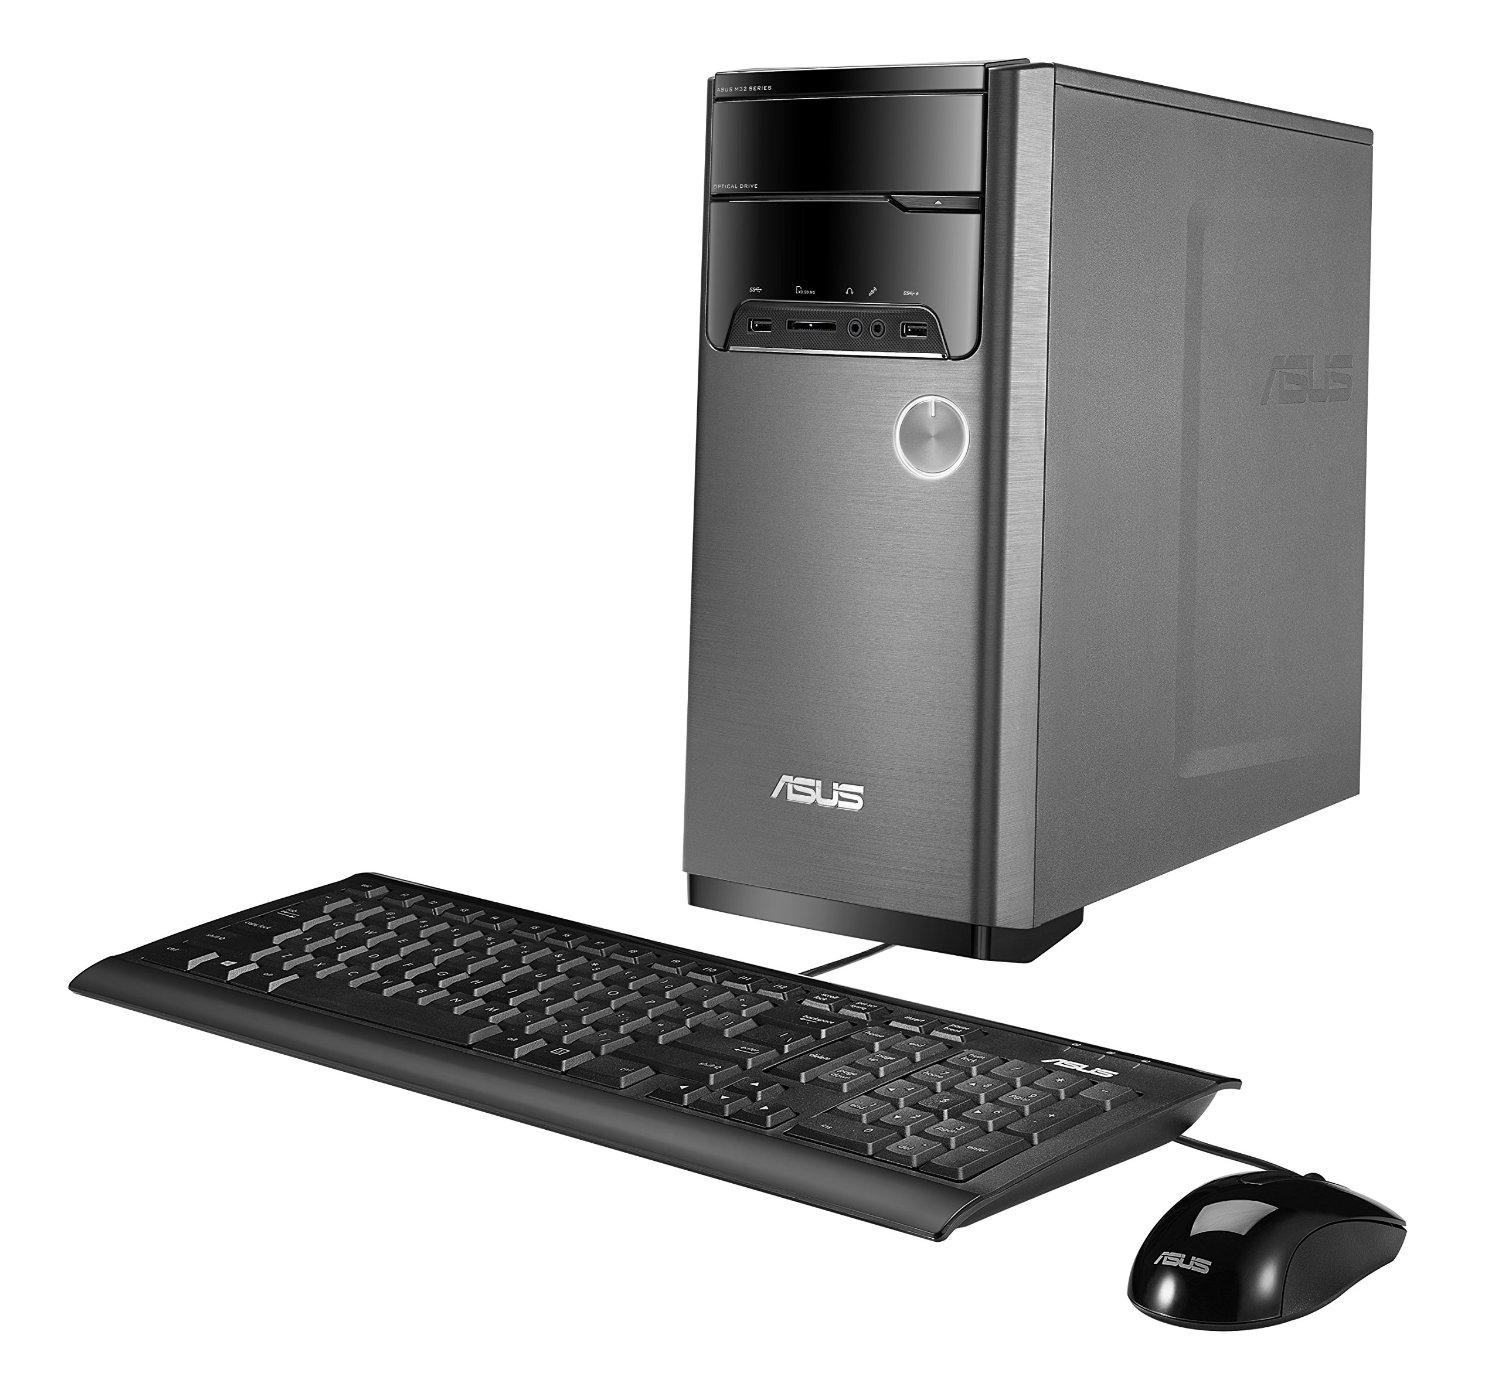 ASUS M32CD Desktop (Core i5, 8GB, 1TB, Windows 10)